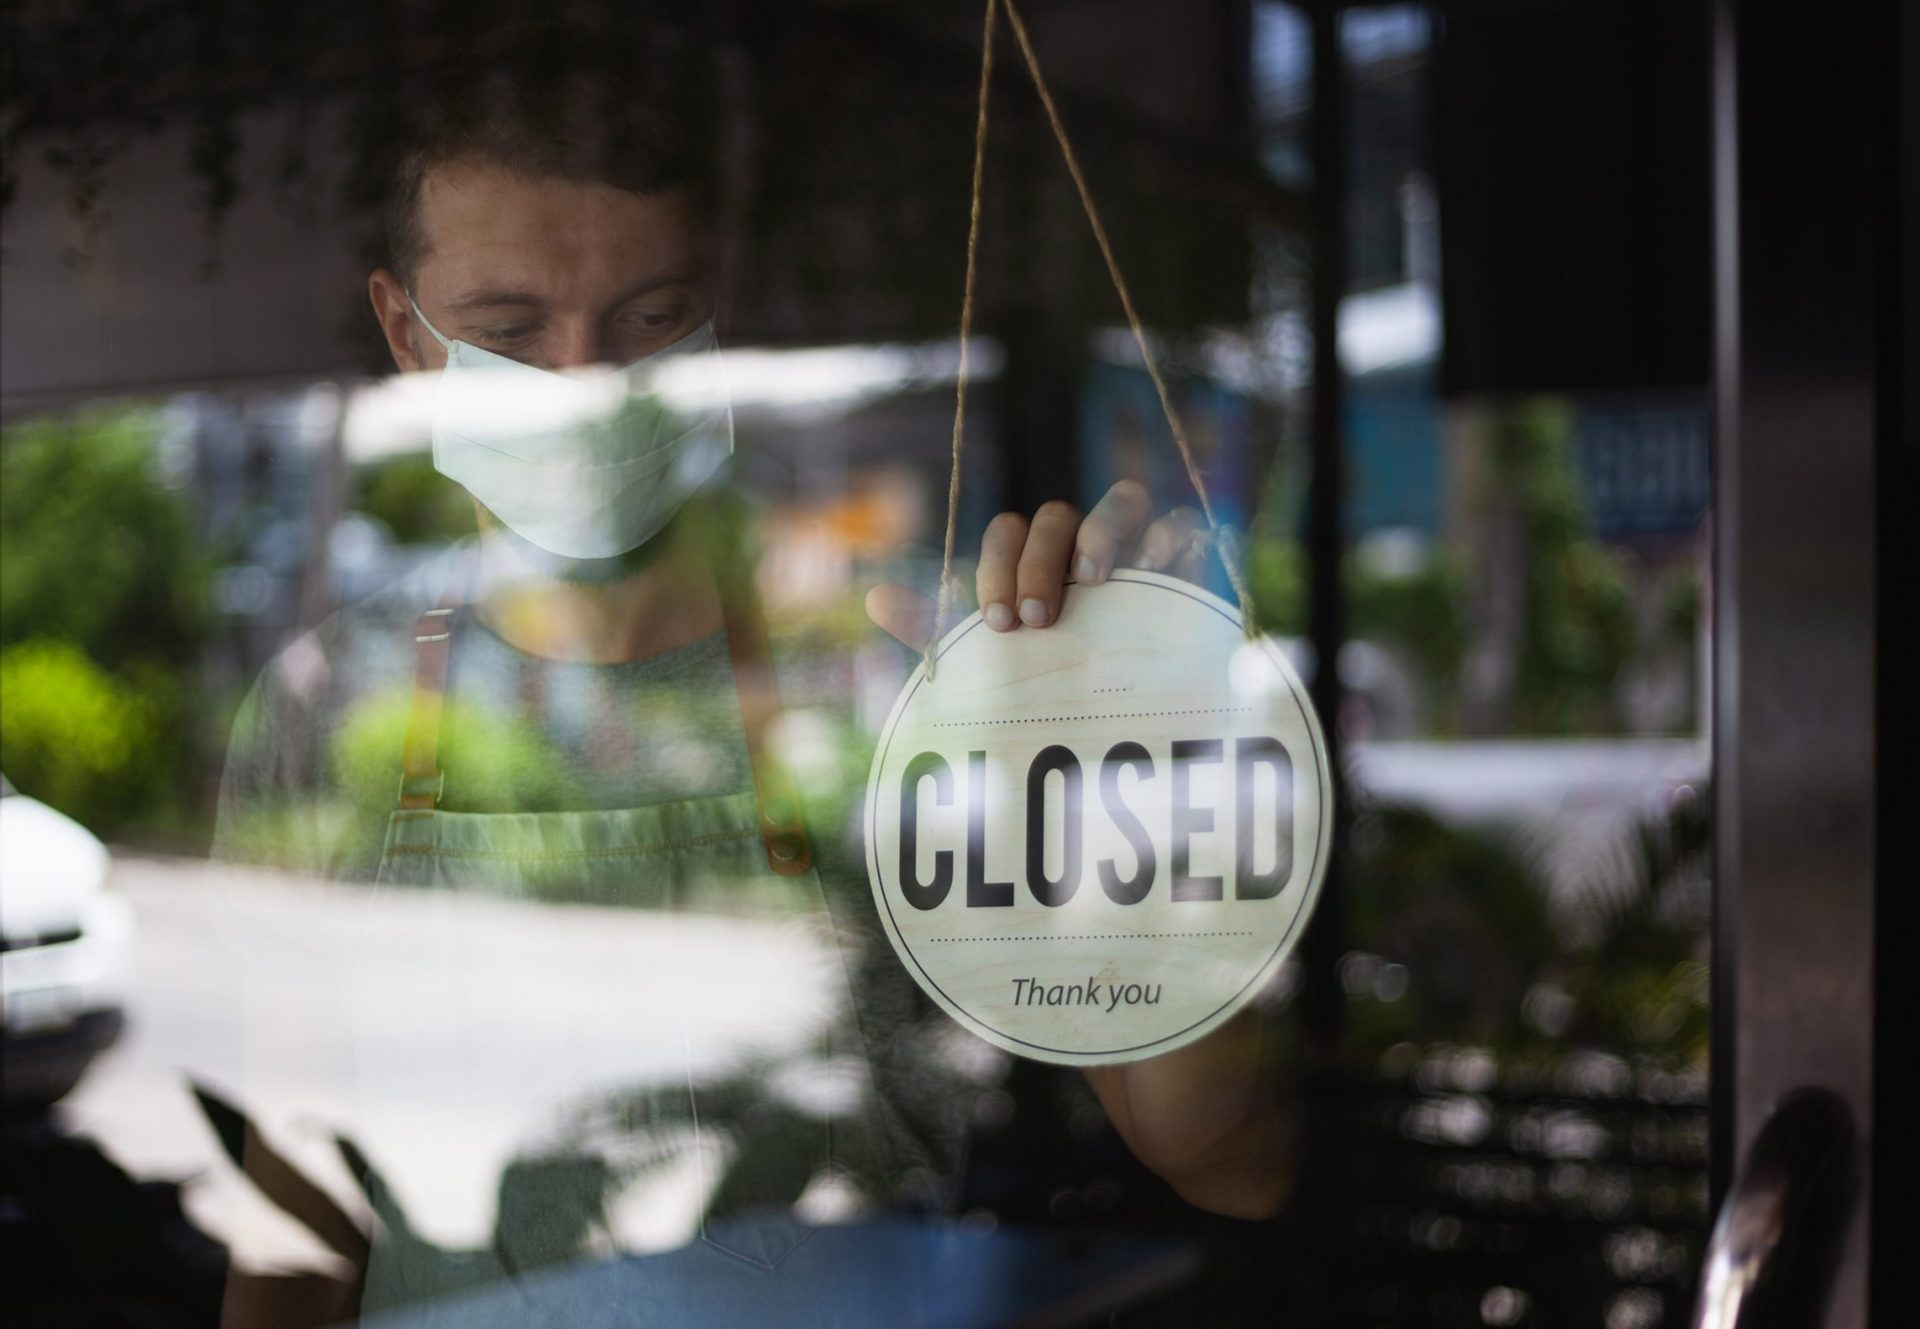 Property law update: NSW COVID-19 emergency regulation - retail and commercial leases in 2021